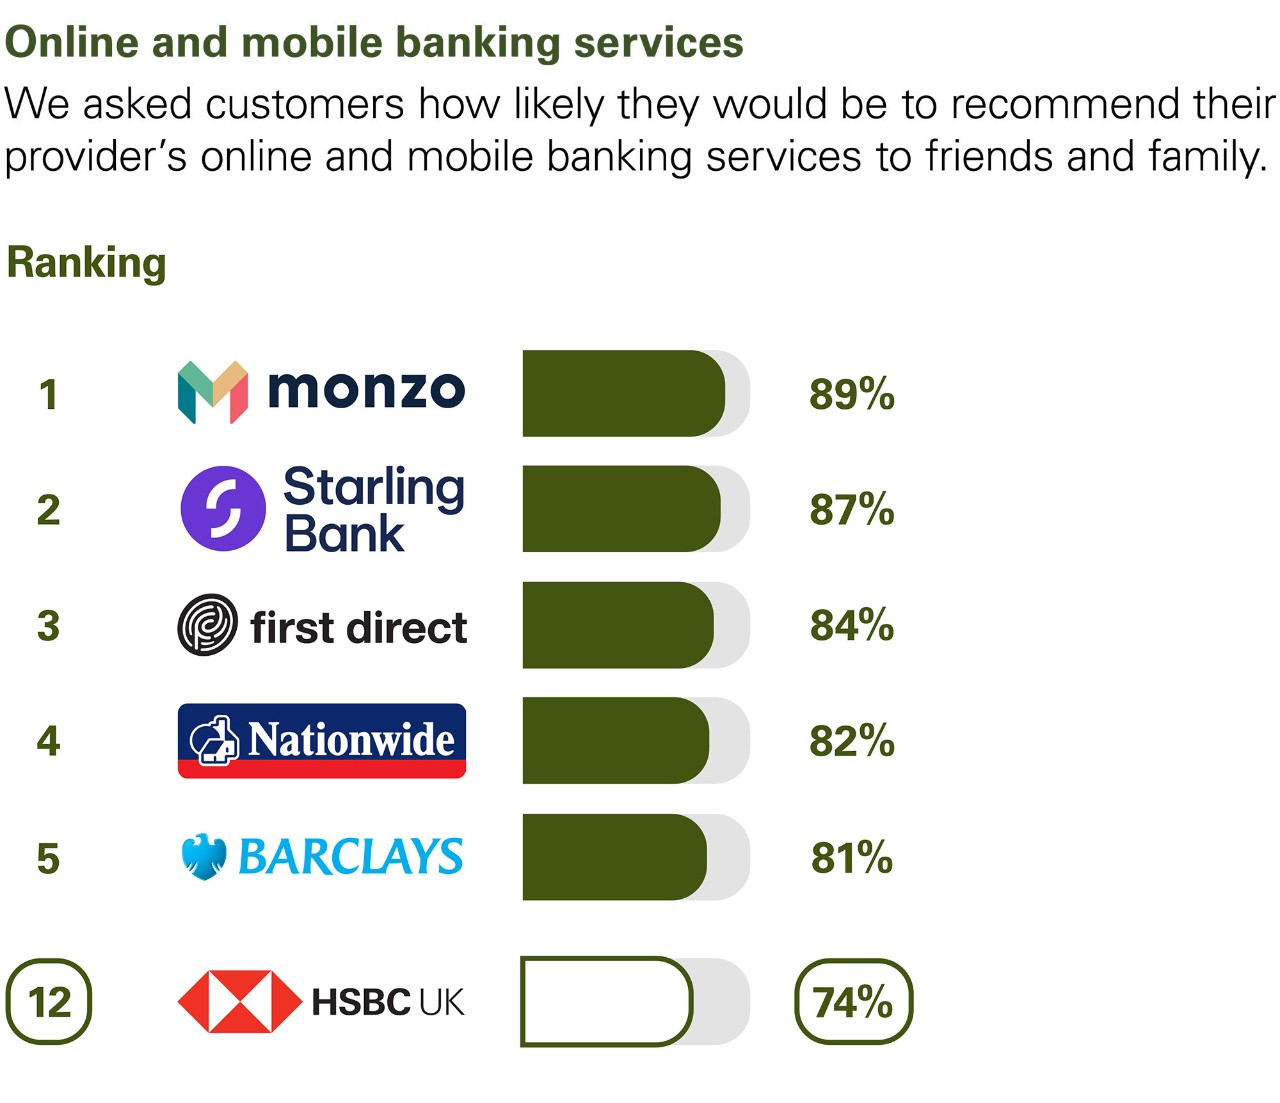 Online and mobile banking services. We asked customers how likely they would be to recommend their provider's online and mobile banking services to friends and family. Ranking: 1 Monzo  89%. 2 Starling Bank 87%. 3 first direct 84%. 4 Nationwide 82%. 5 Barclays 81%. 12 HSBC UK 74%.